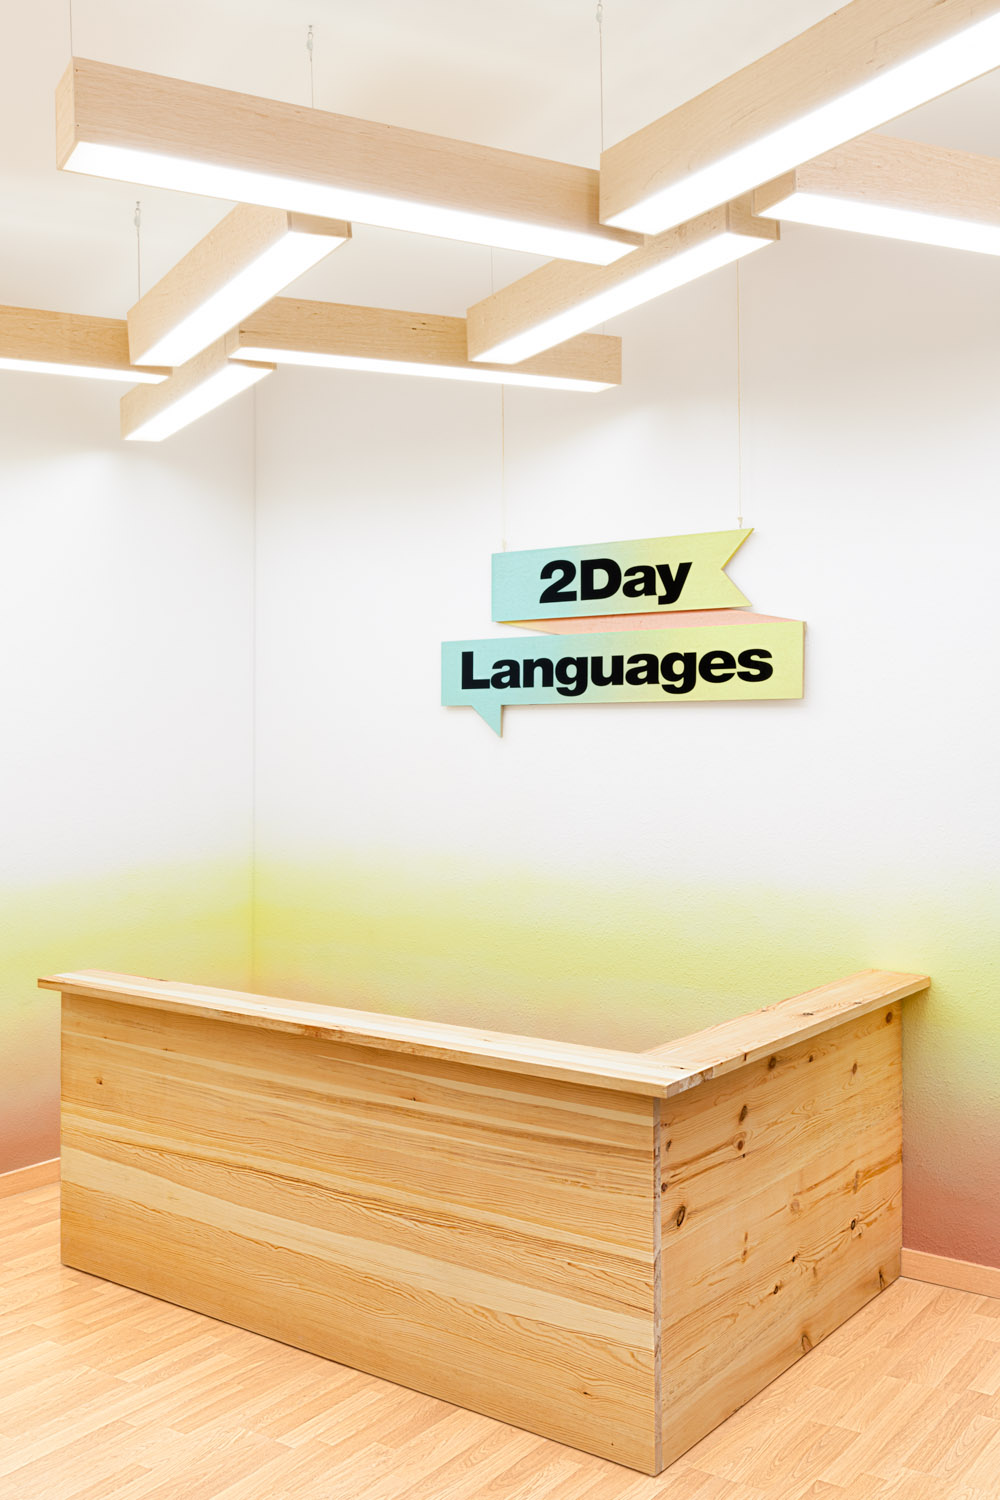 cualiti_2day_languages05